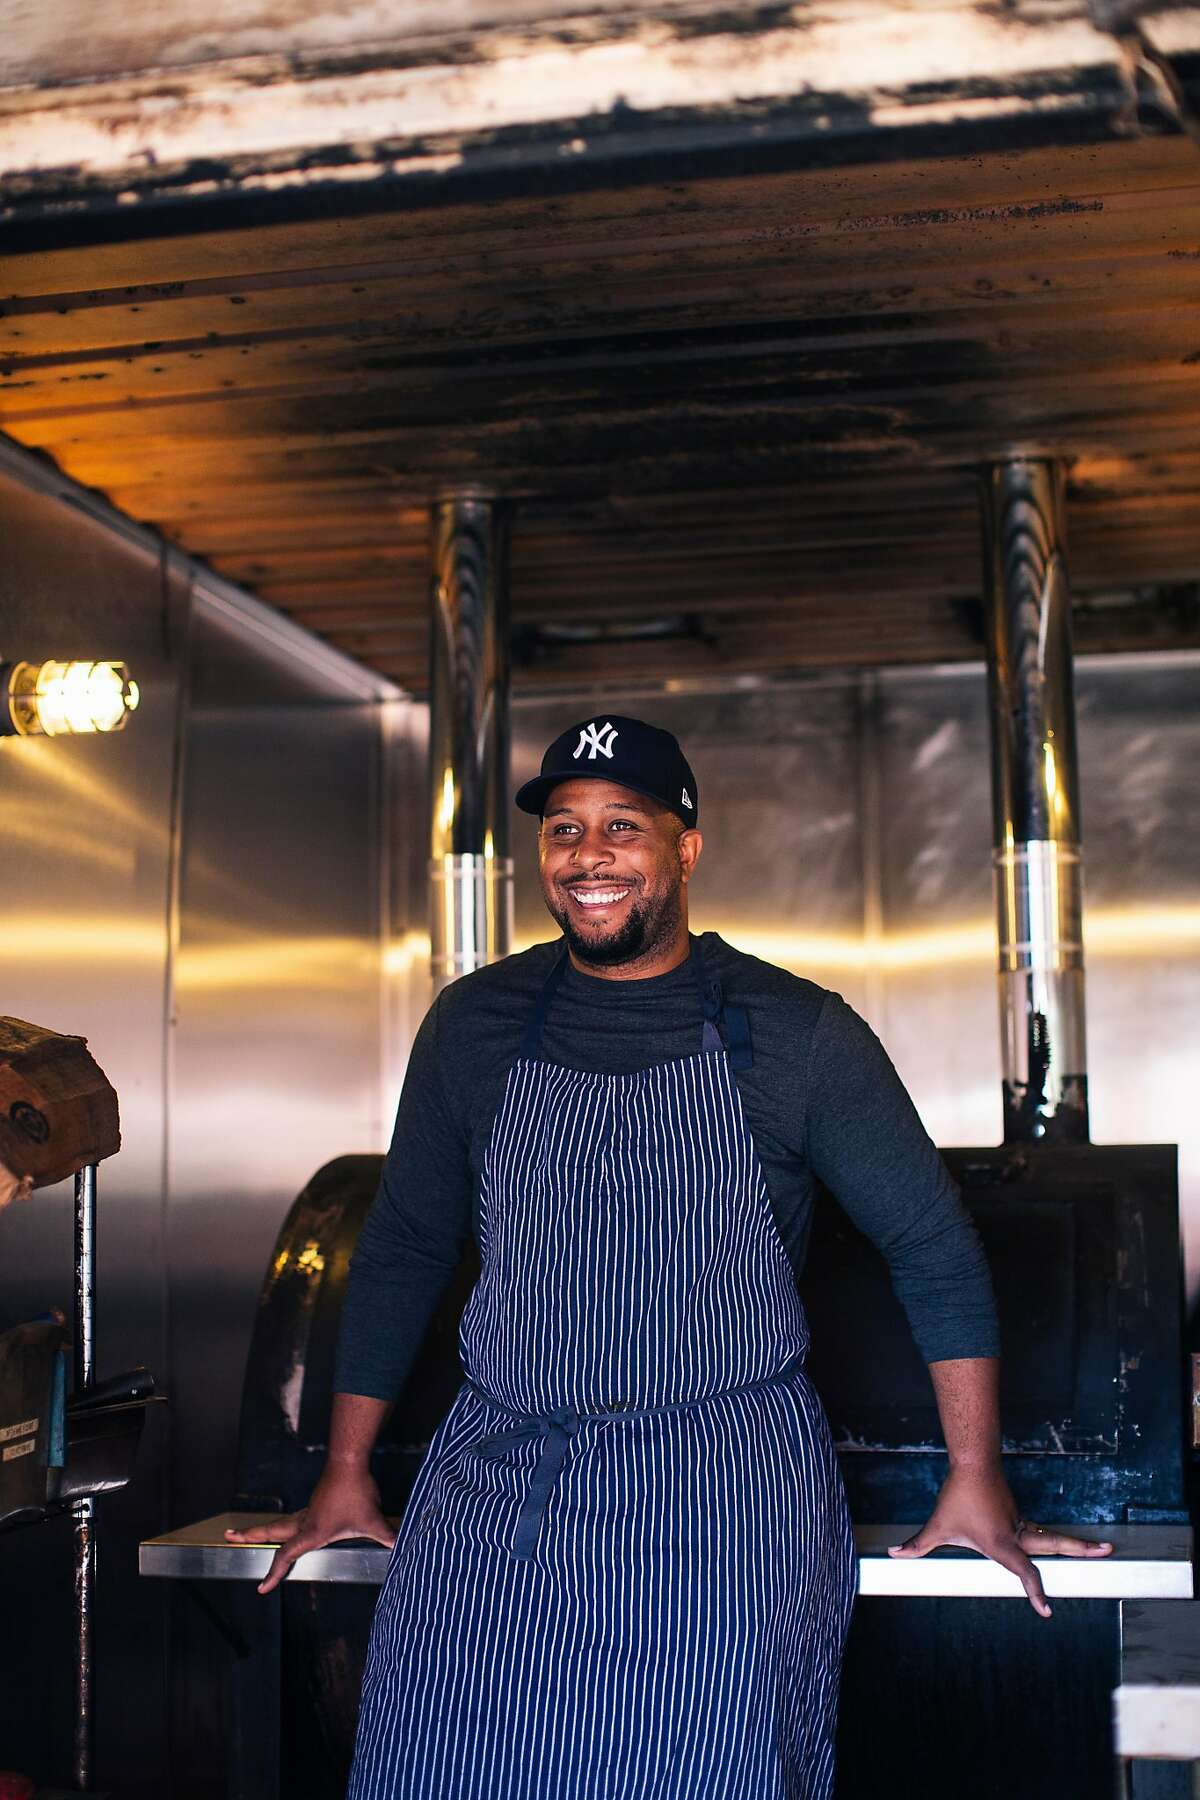 Matt Horn's new restaurant will open with takeout and outdoor service for up to 80 diners.